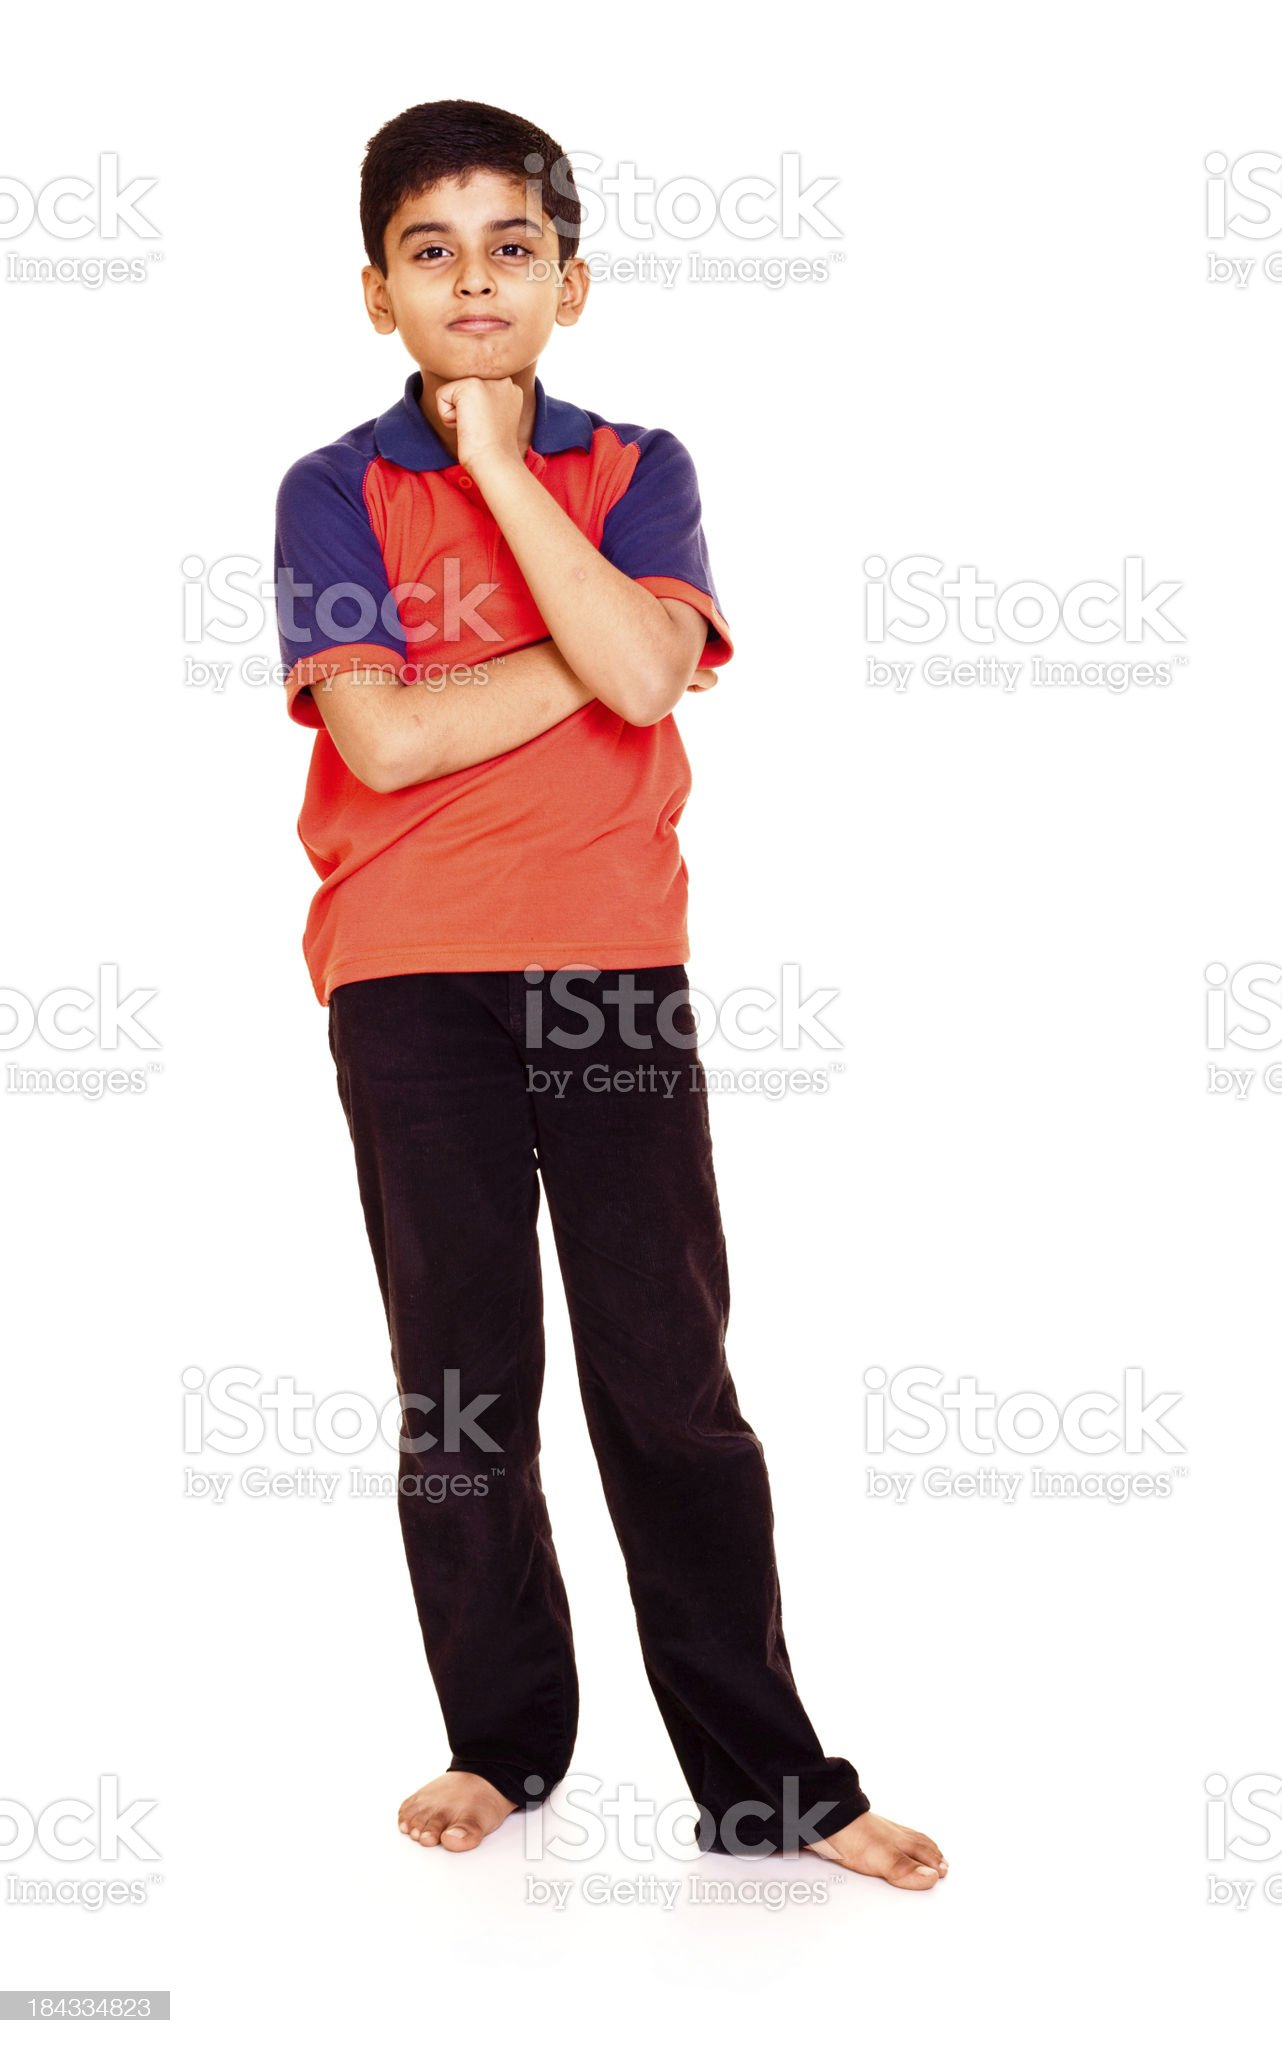 Isolated Indian Boy Standing Pensive Hand on Chin Full Length royalty-free stock photo